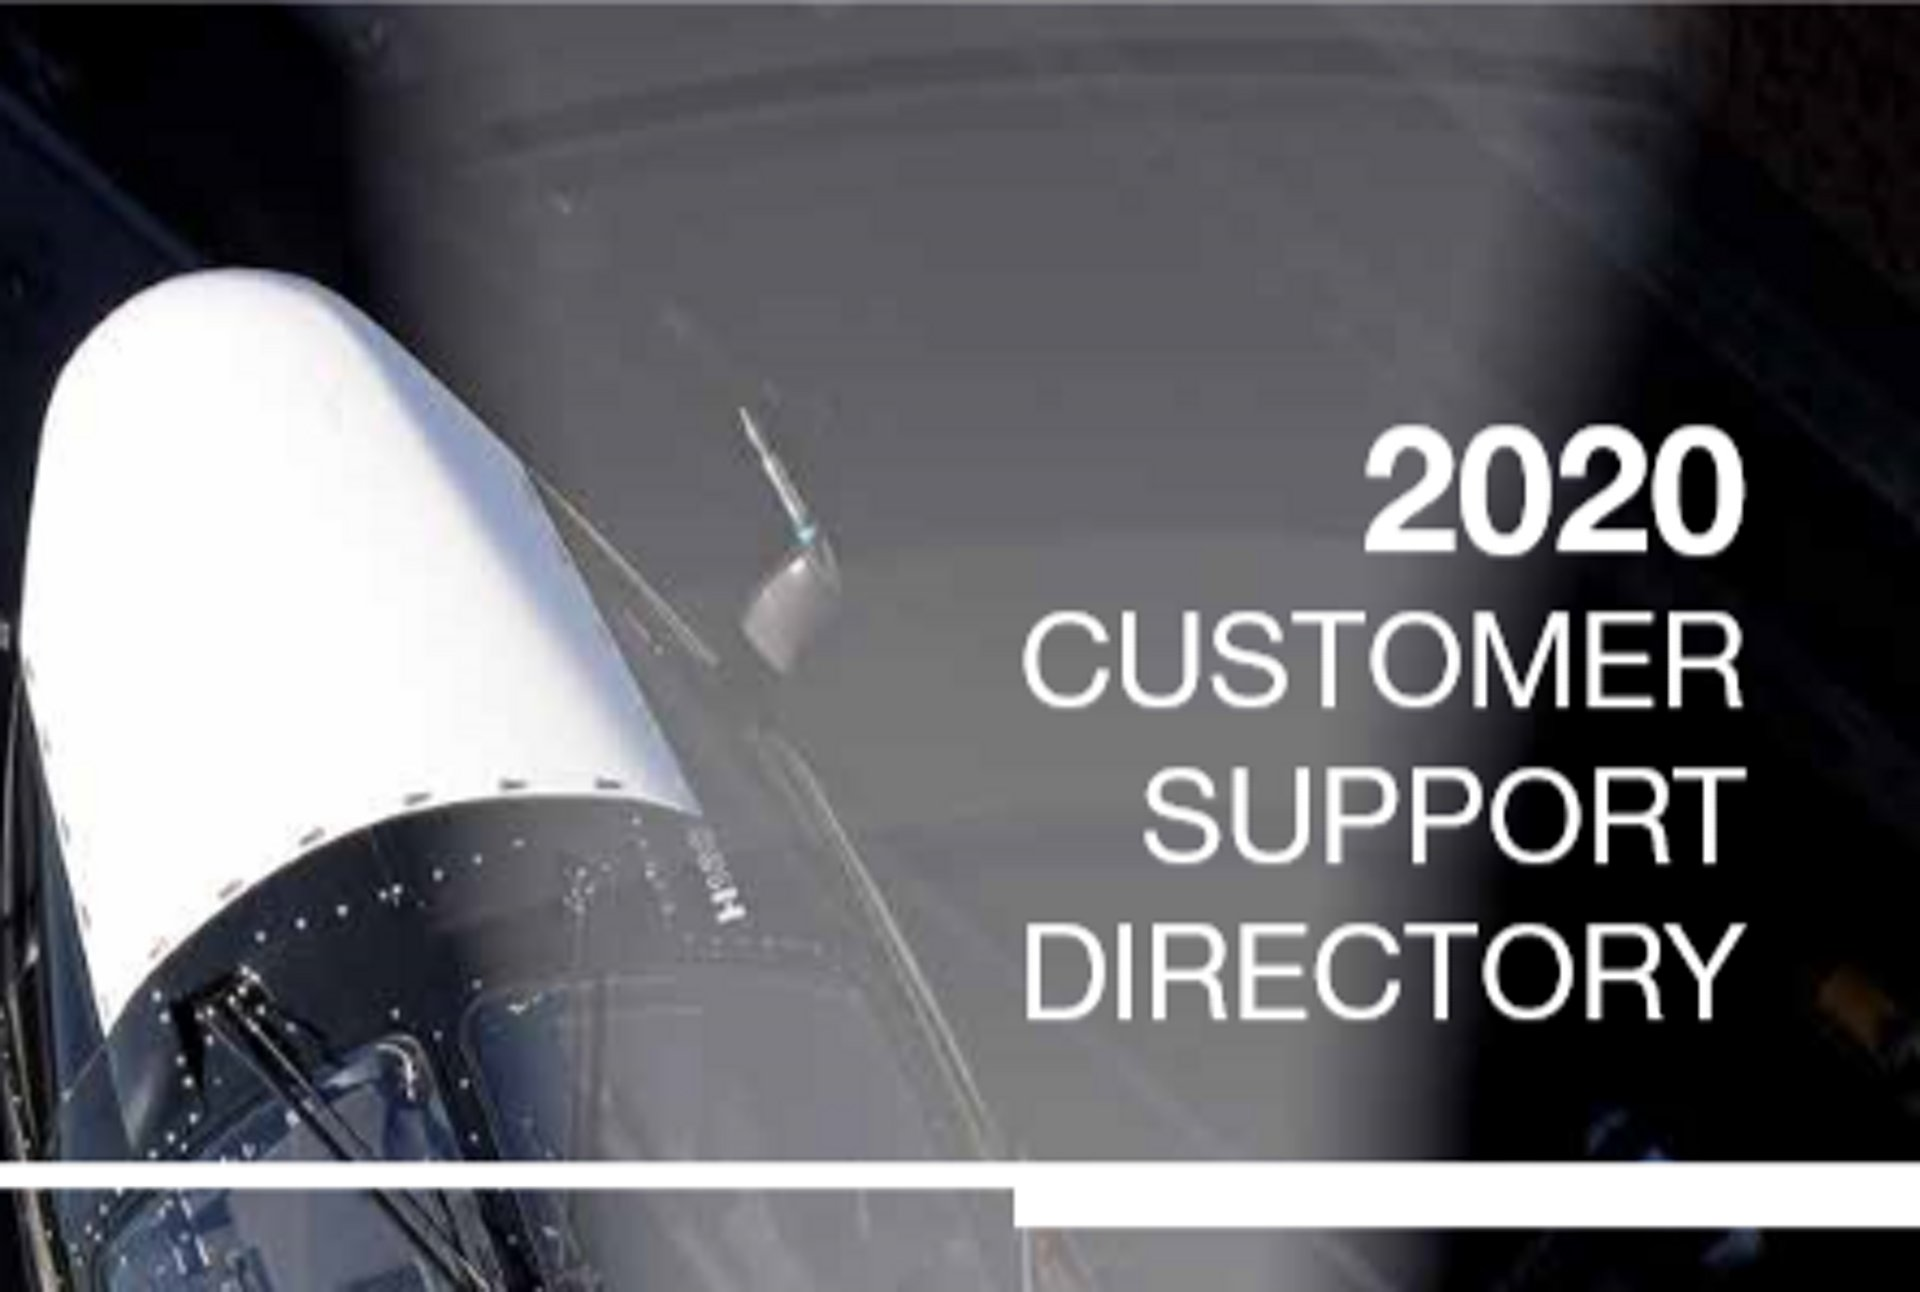 2020 Customer Support Directory